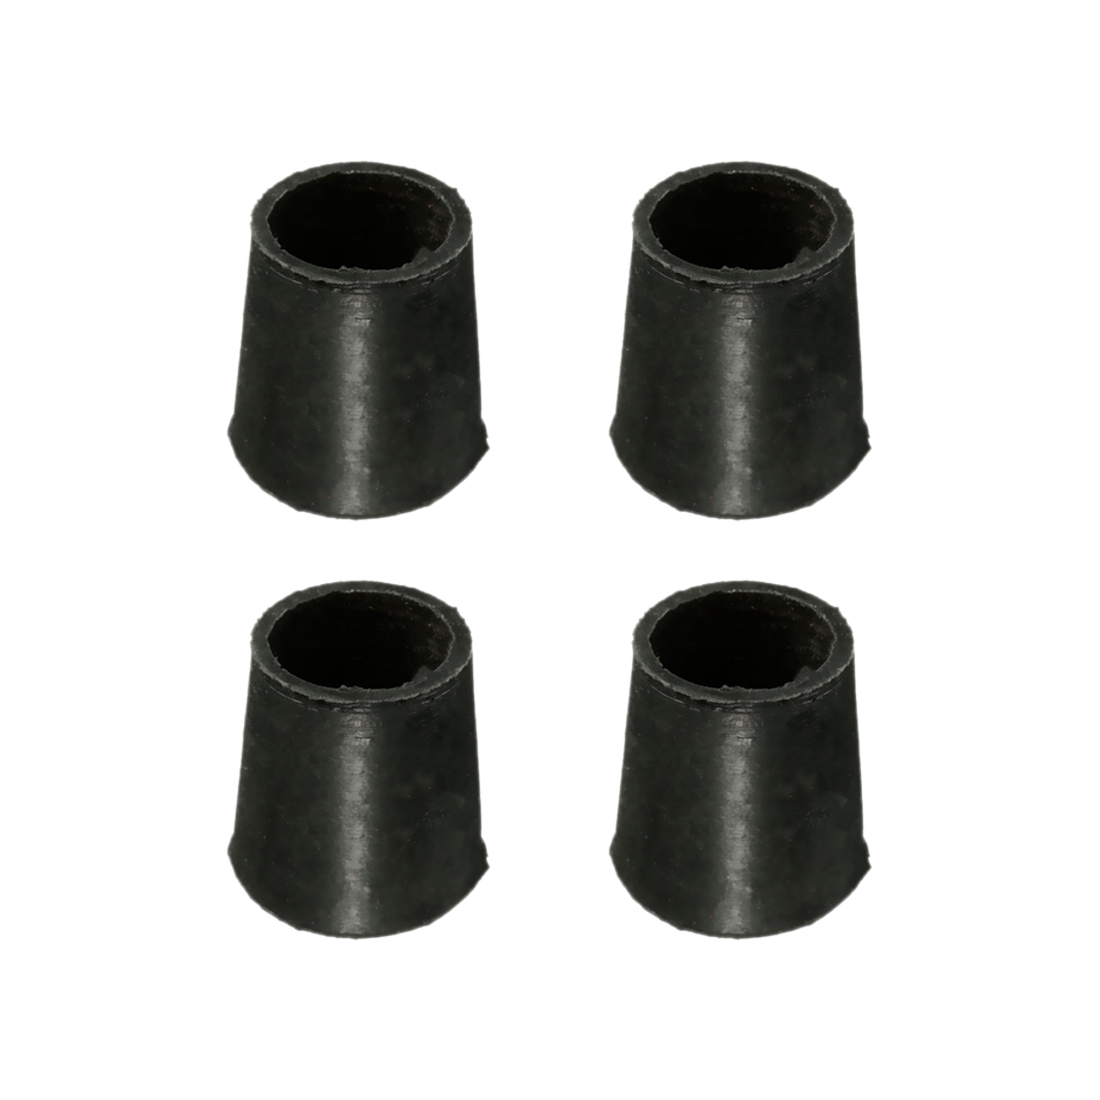 "black anti scratch Small-Large Rubber Ferrule floor protector chair feet leg capdiameter :16Mm(5/8"") Quantity::4Pcs"